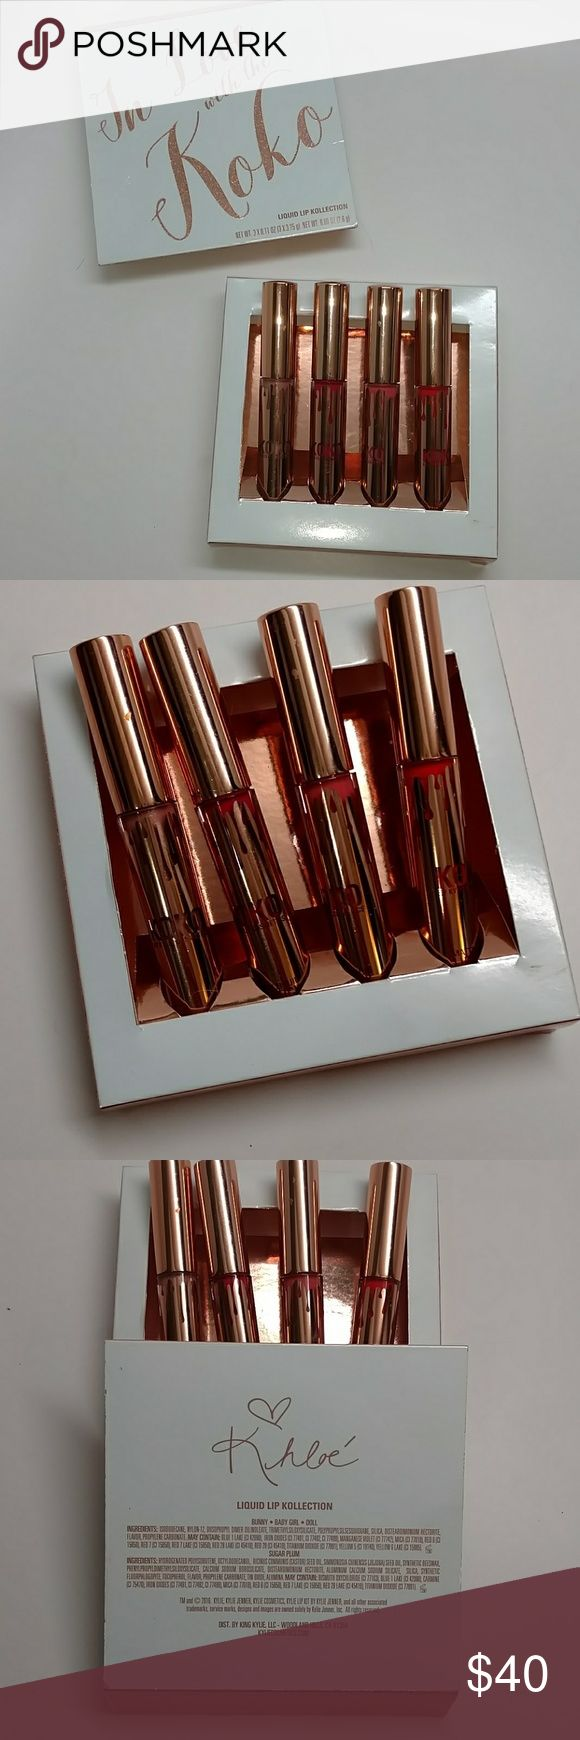 In Love With KoKo lip Kollection In Love With KoKo lip Kollection. Direct from Kylie Cosmetics. Copy of original invoice available. Need with box never tested or used. Fast Shipping. Kylie Cosmetics Makeup Lipstick